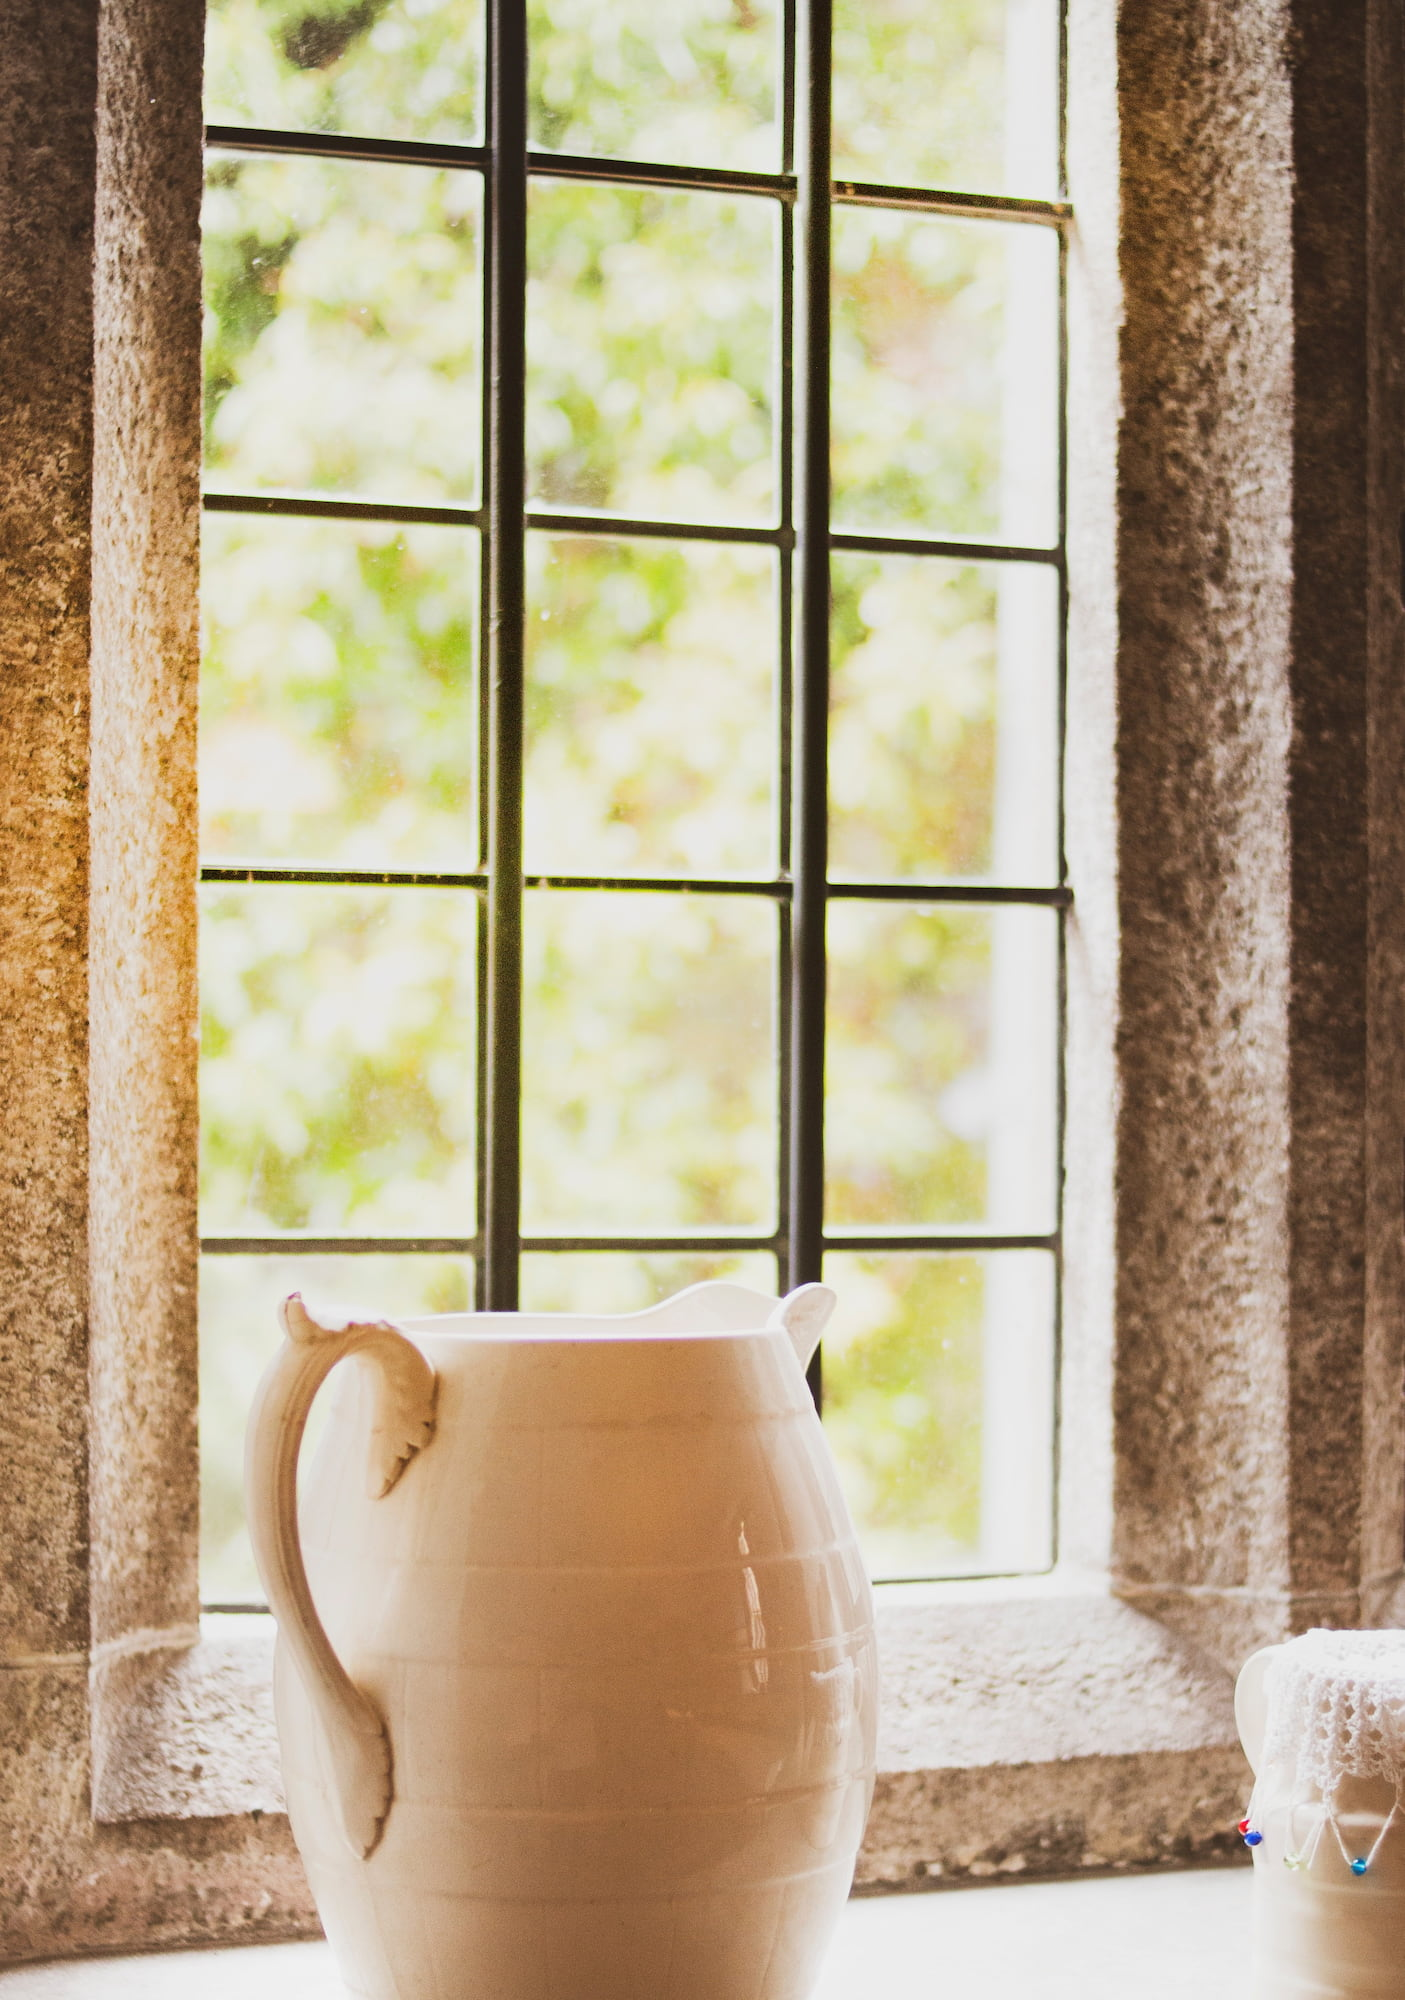 A white ceramic water jug rests on a window sill made of iron and surrounded by a stone frame